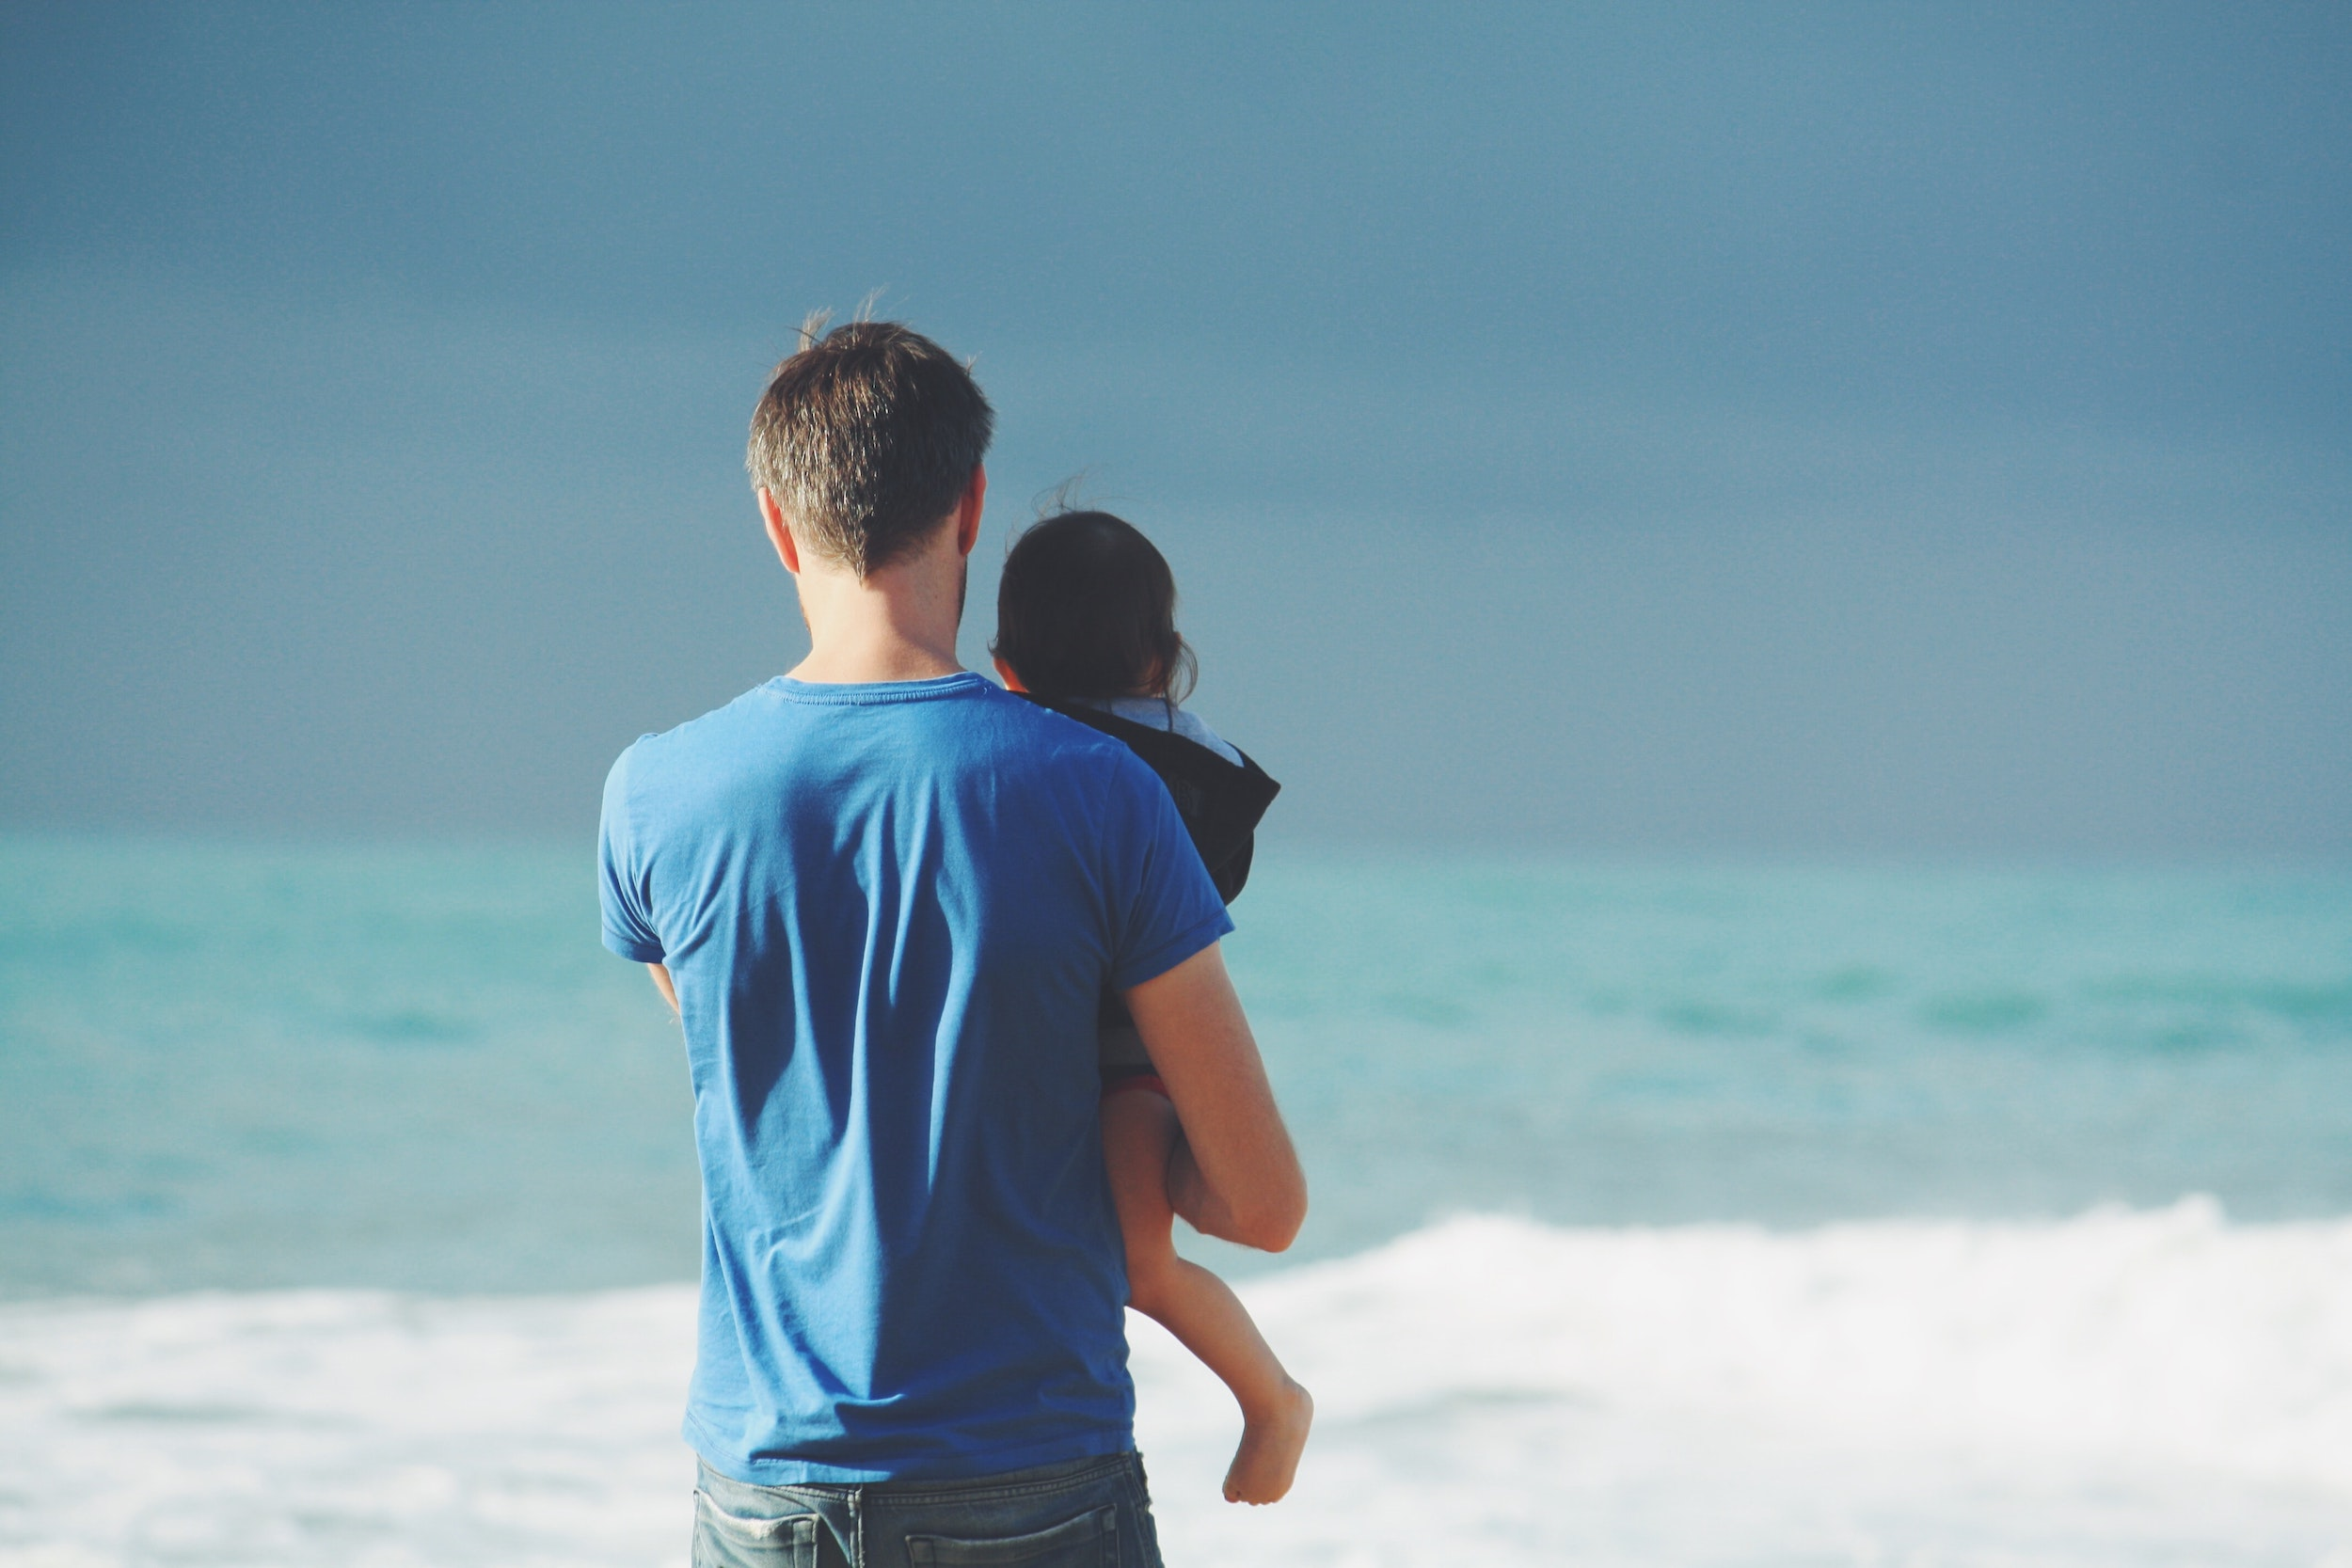 How is Child Support Determined in Divorce?